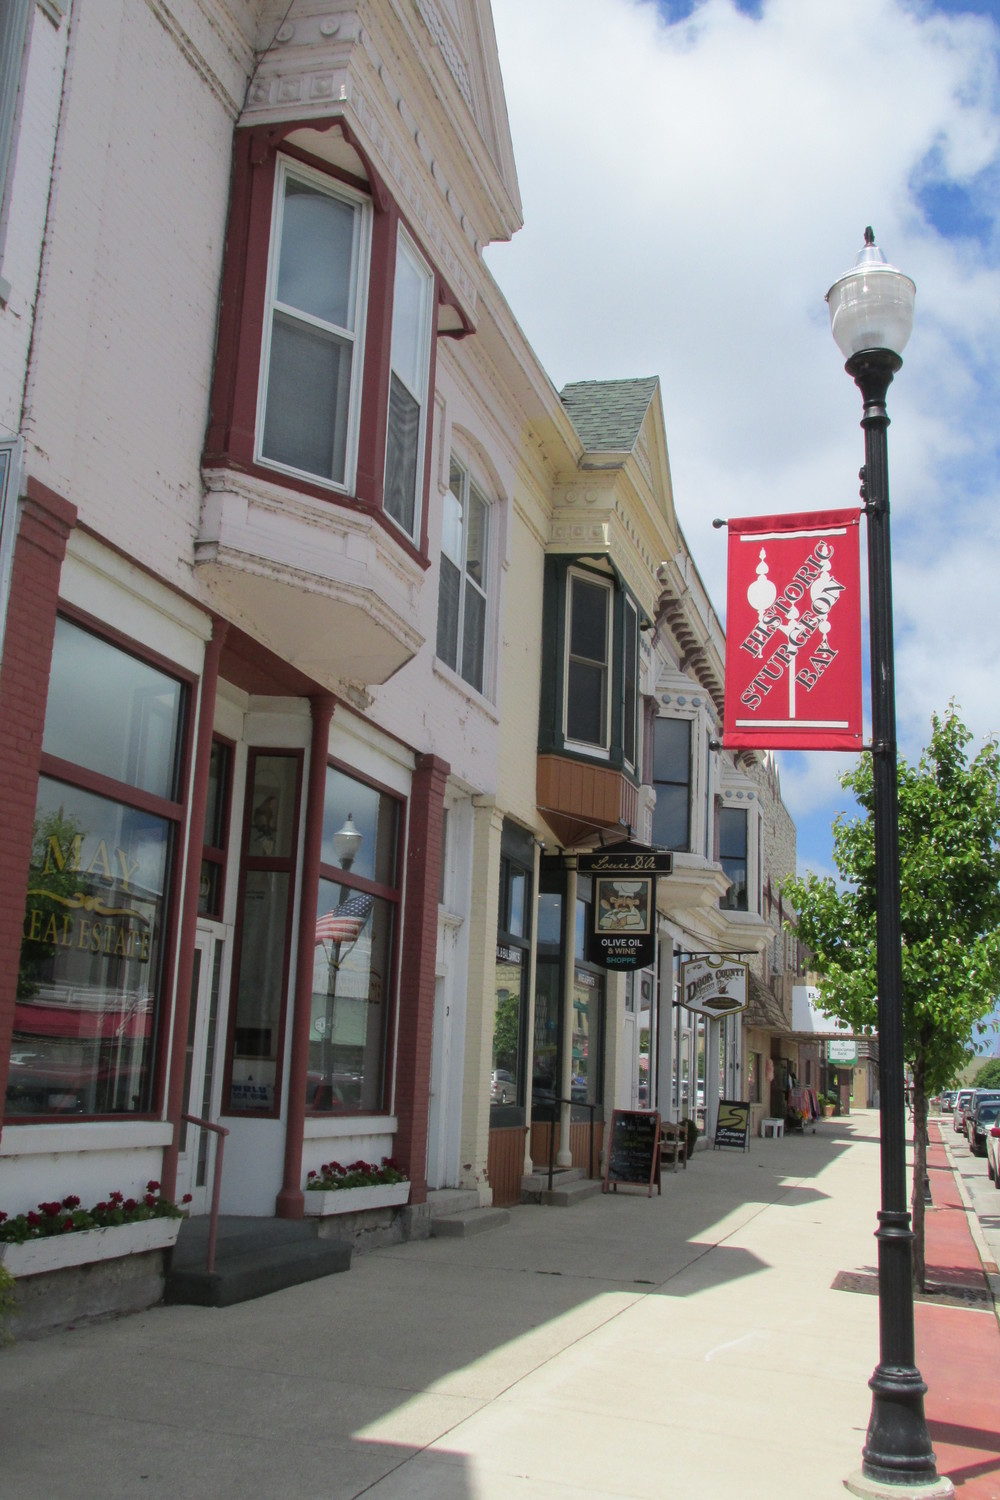 Downtown Sturgeon Bay was quaint and small town friendly.